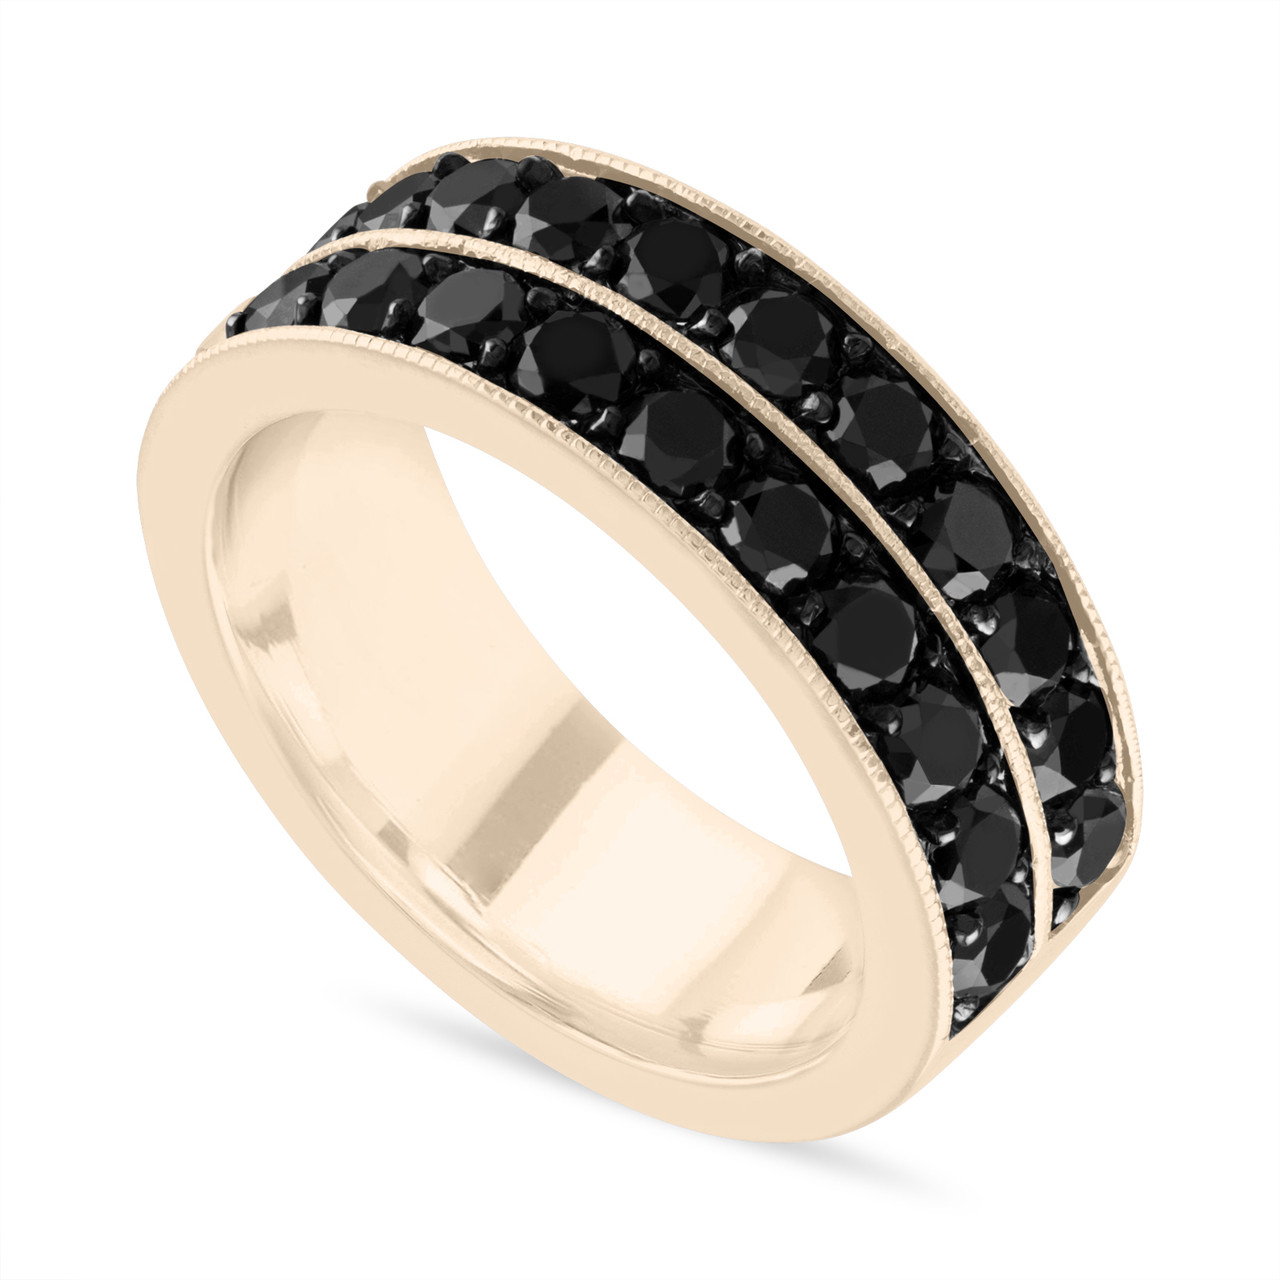 Black Diamond Mens Wedding Band Mens Wedding Ring 14k Yellow Gold 8 Mm Two Row Pave Handmade Certified Unique